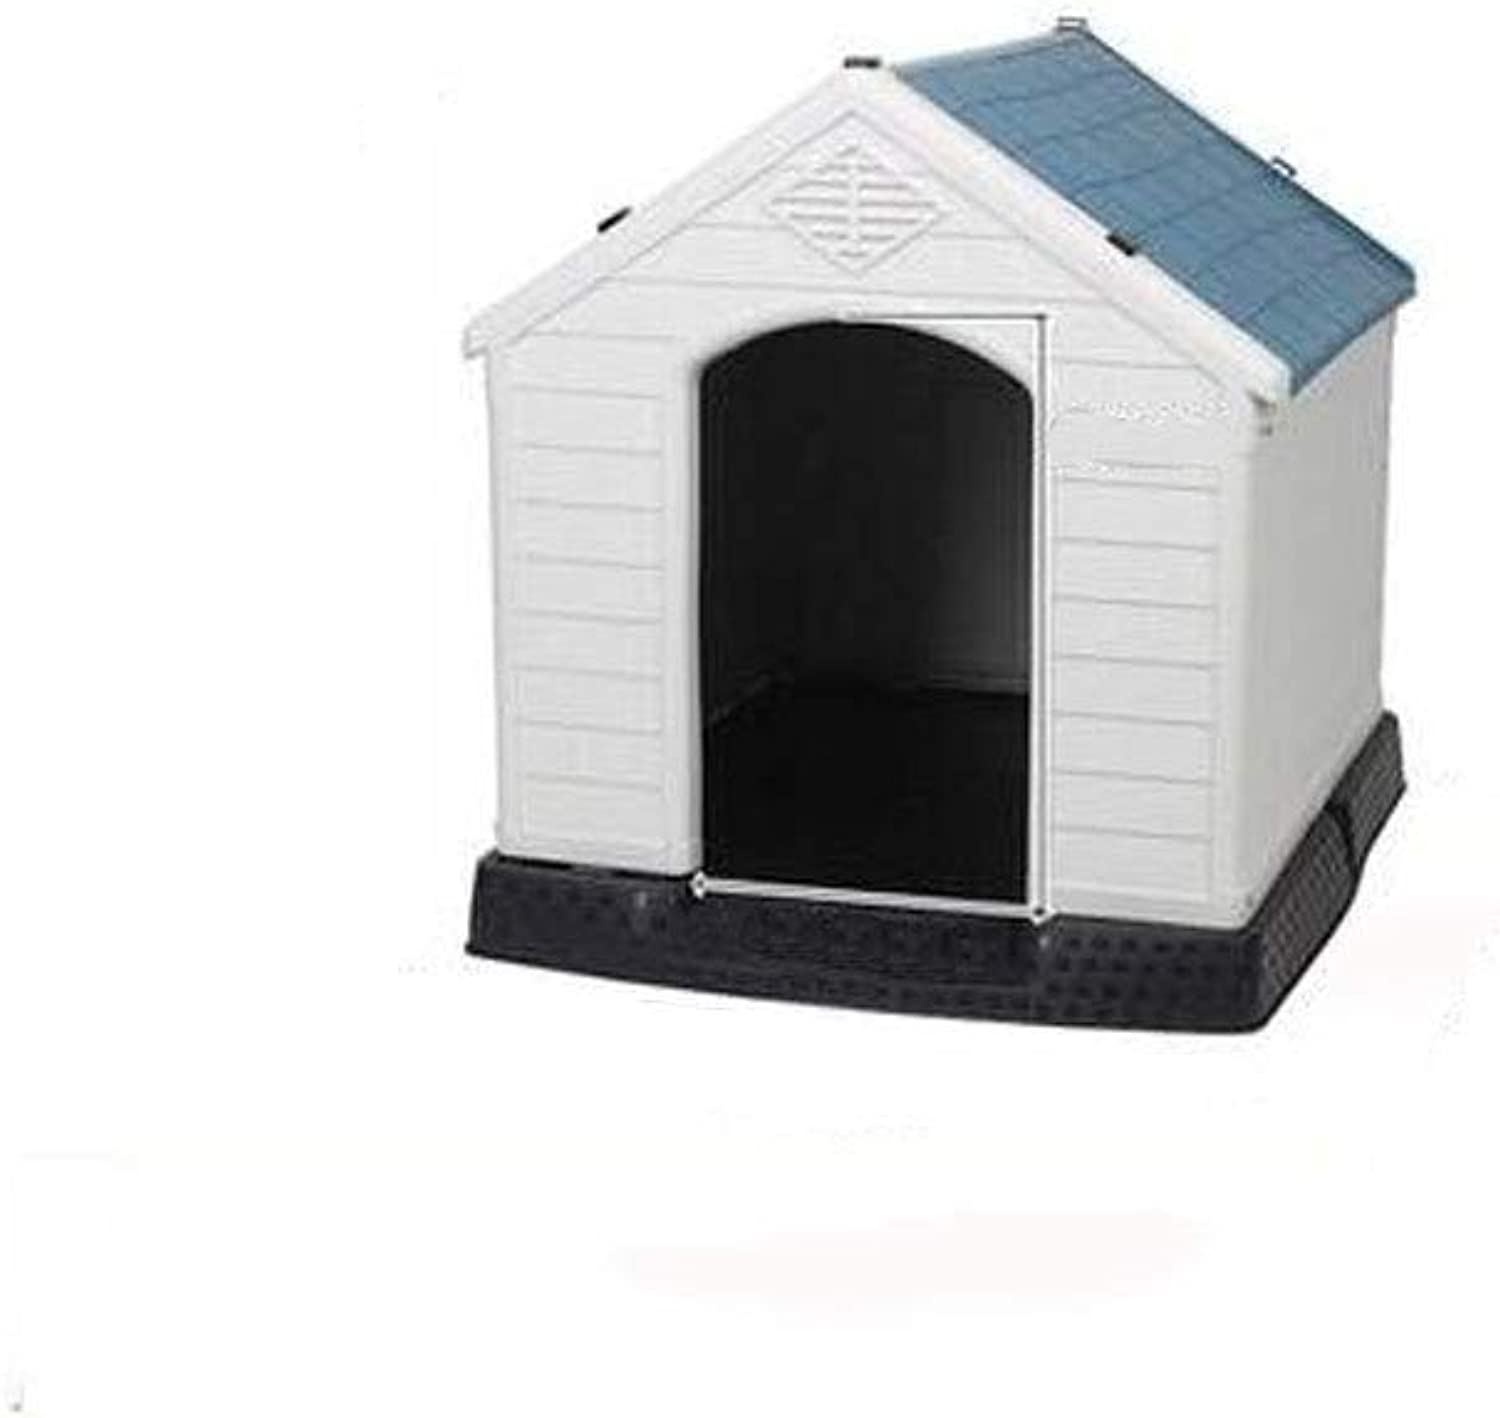 AALIJIN Trumpet dog house large and medium small dogs outdoor plastic pet Teddy dog house indoor kennel waterproof four seasons universal